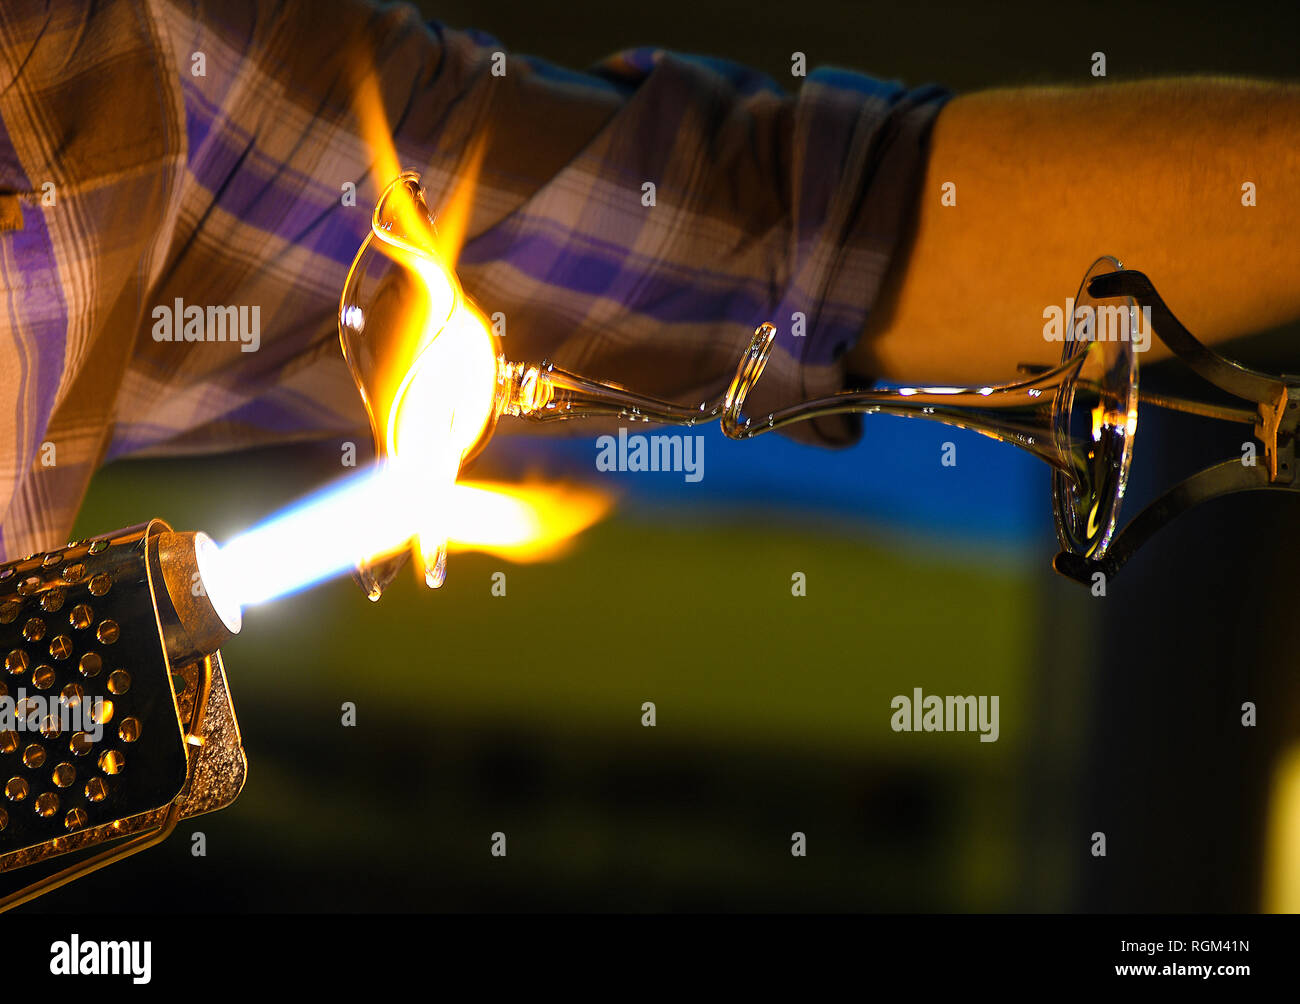 close up of glass blower making fancy glass vase with flaming torch - Stock Image